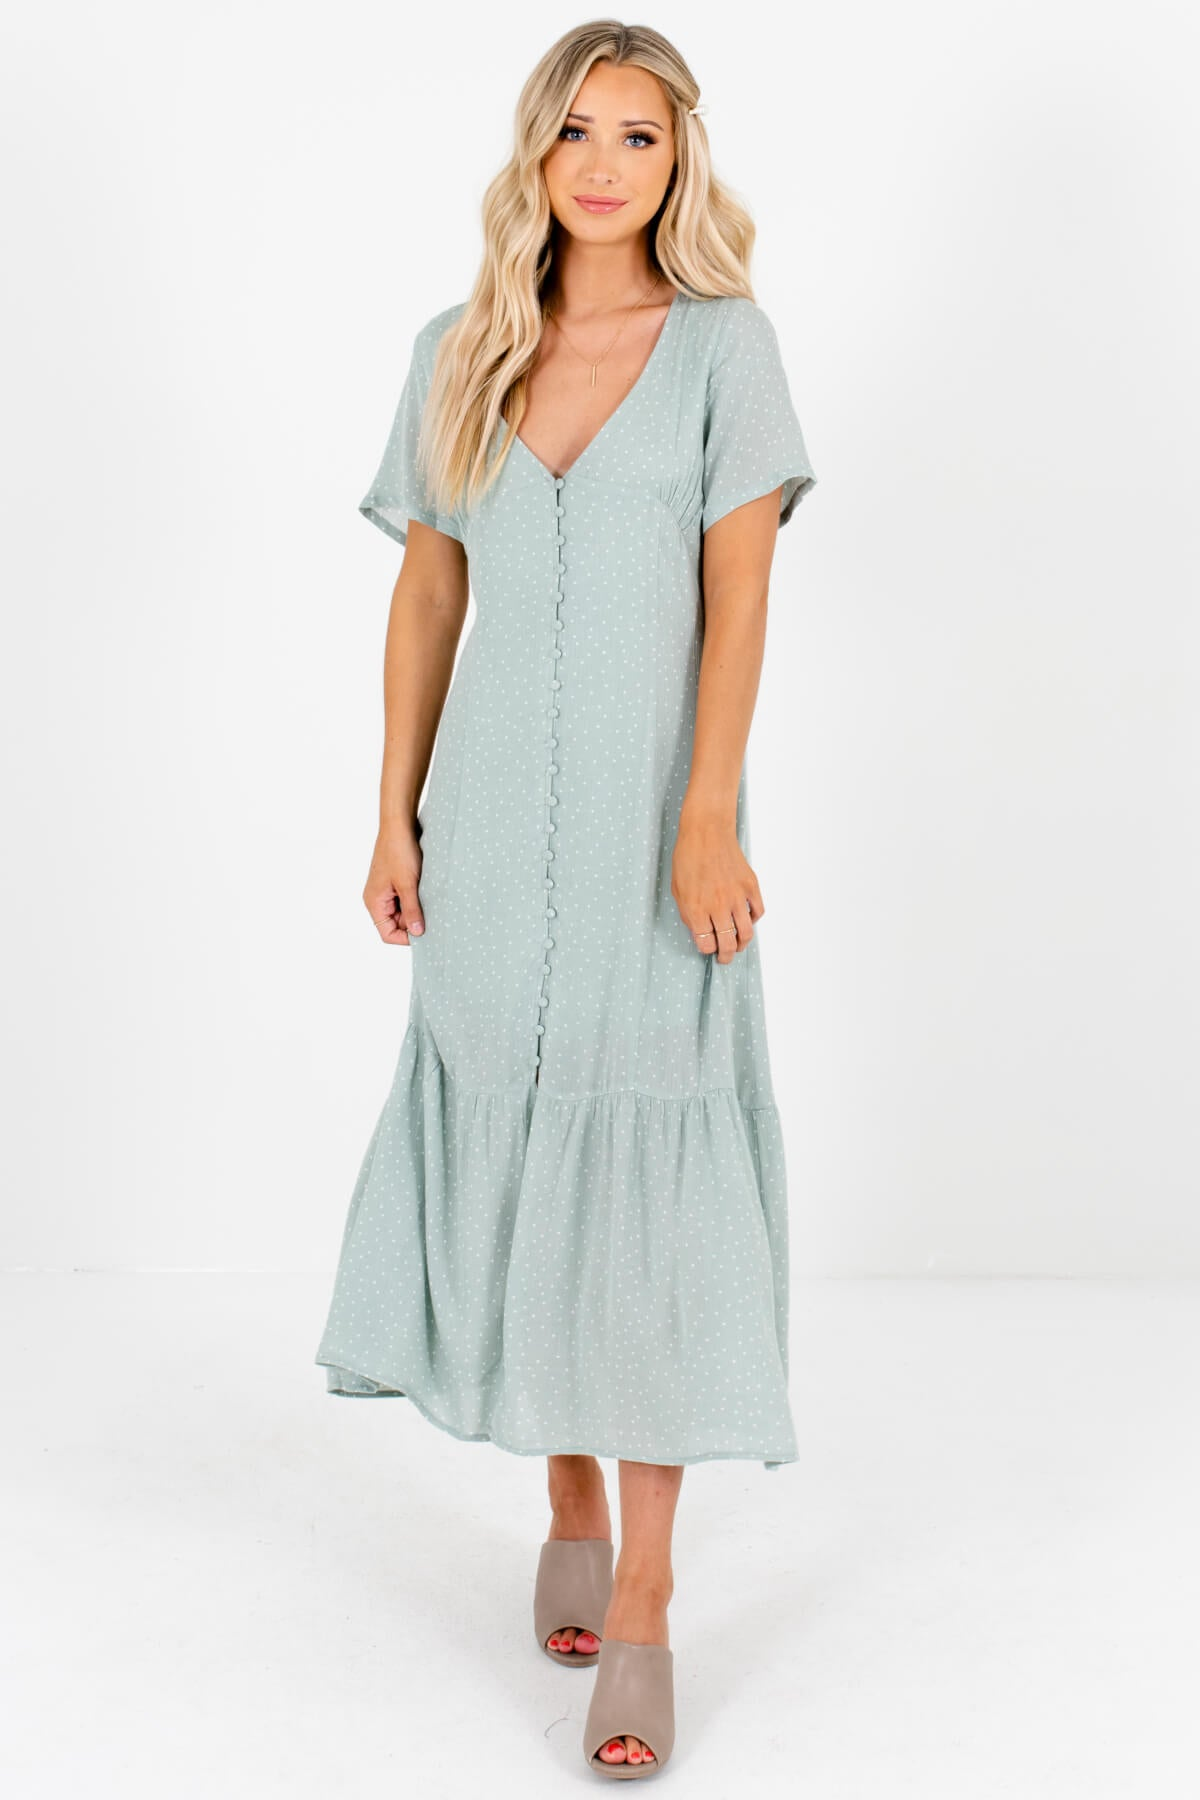 Sage Green Polka Dot Button-Up Maxi Dresses Affordable Online Boutique